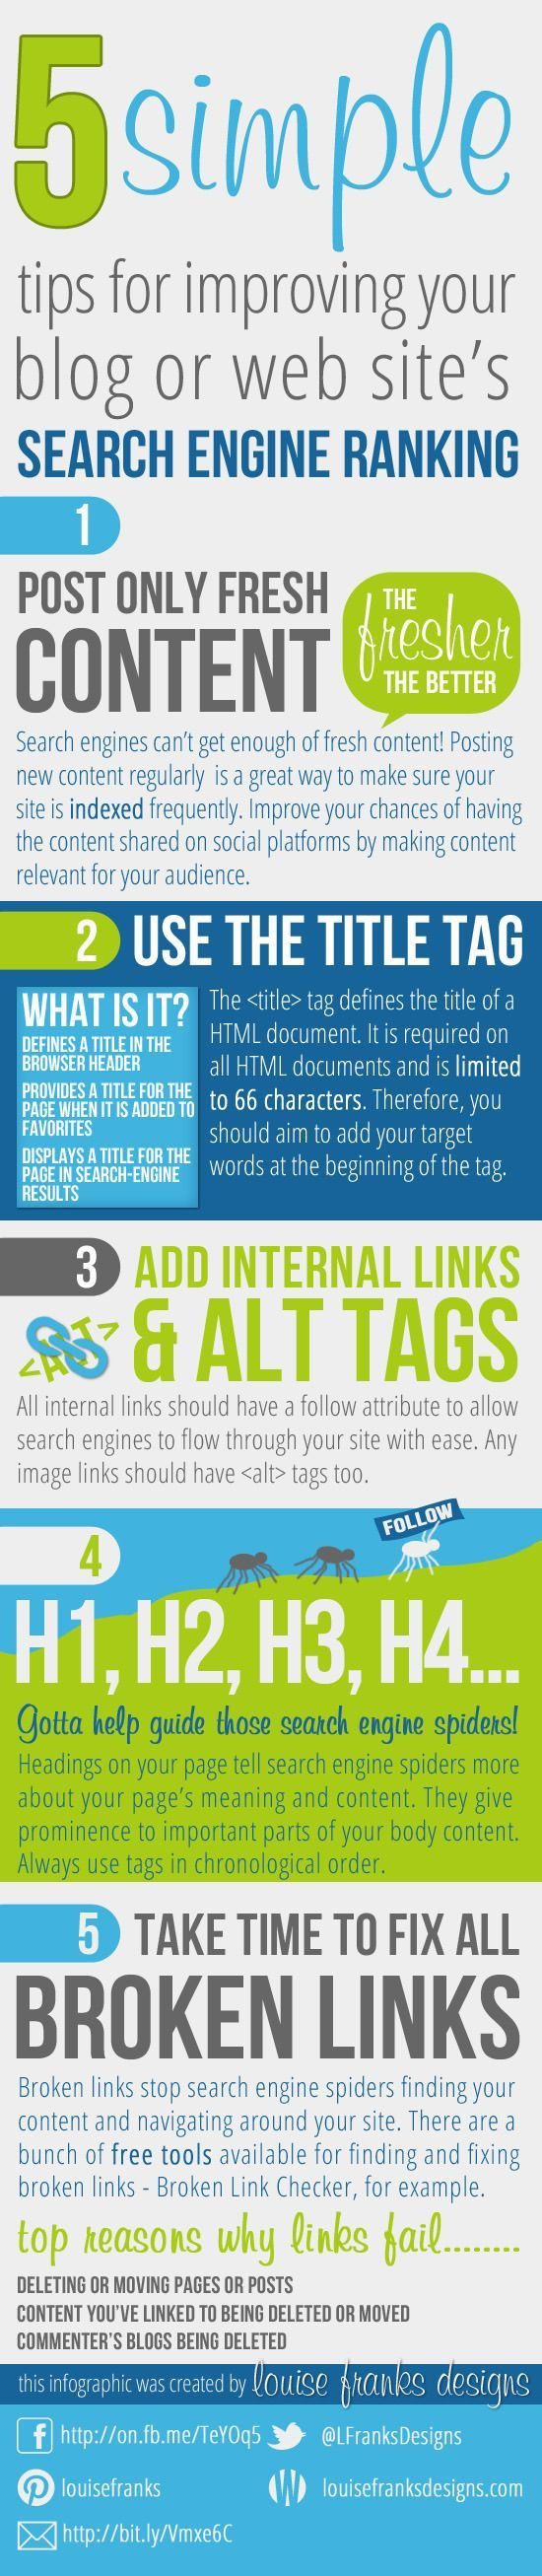 5 simple tips for improving your blog or web site's INFOGRAPHIC